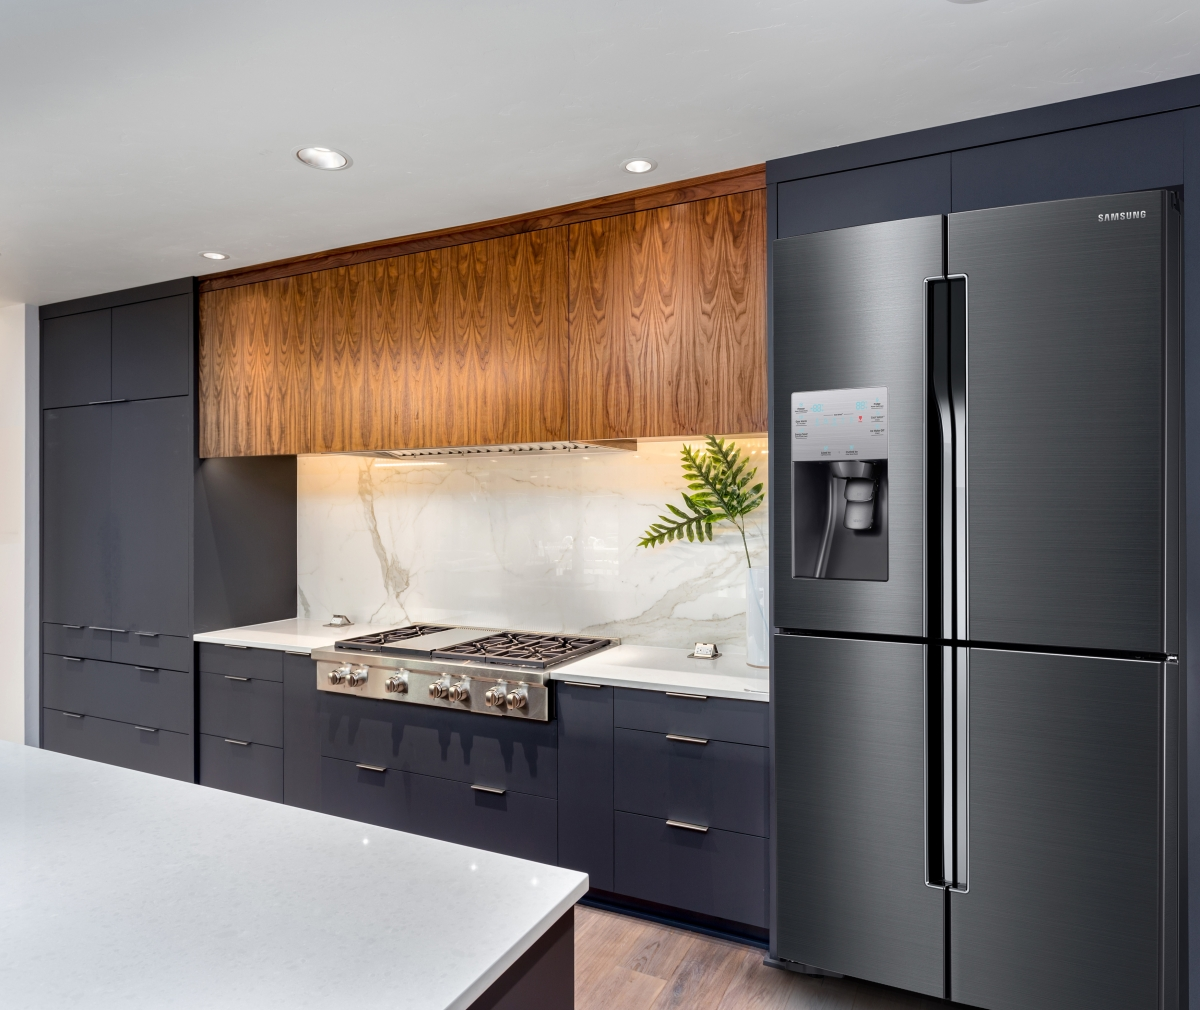 5 reasons to update your kitchen with a Samsung French DoorFridge